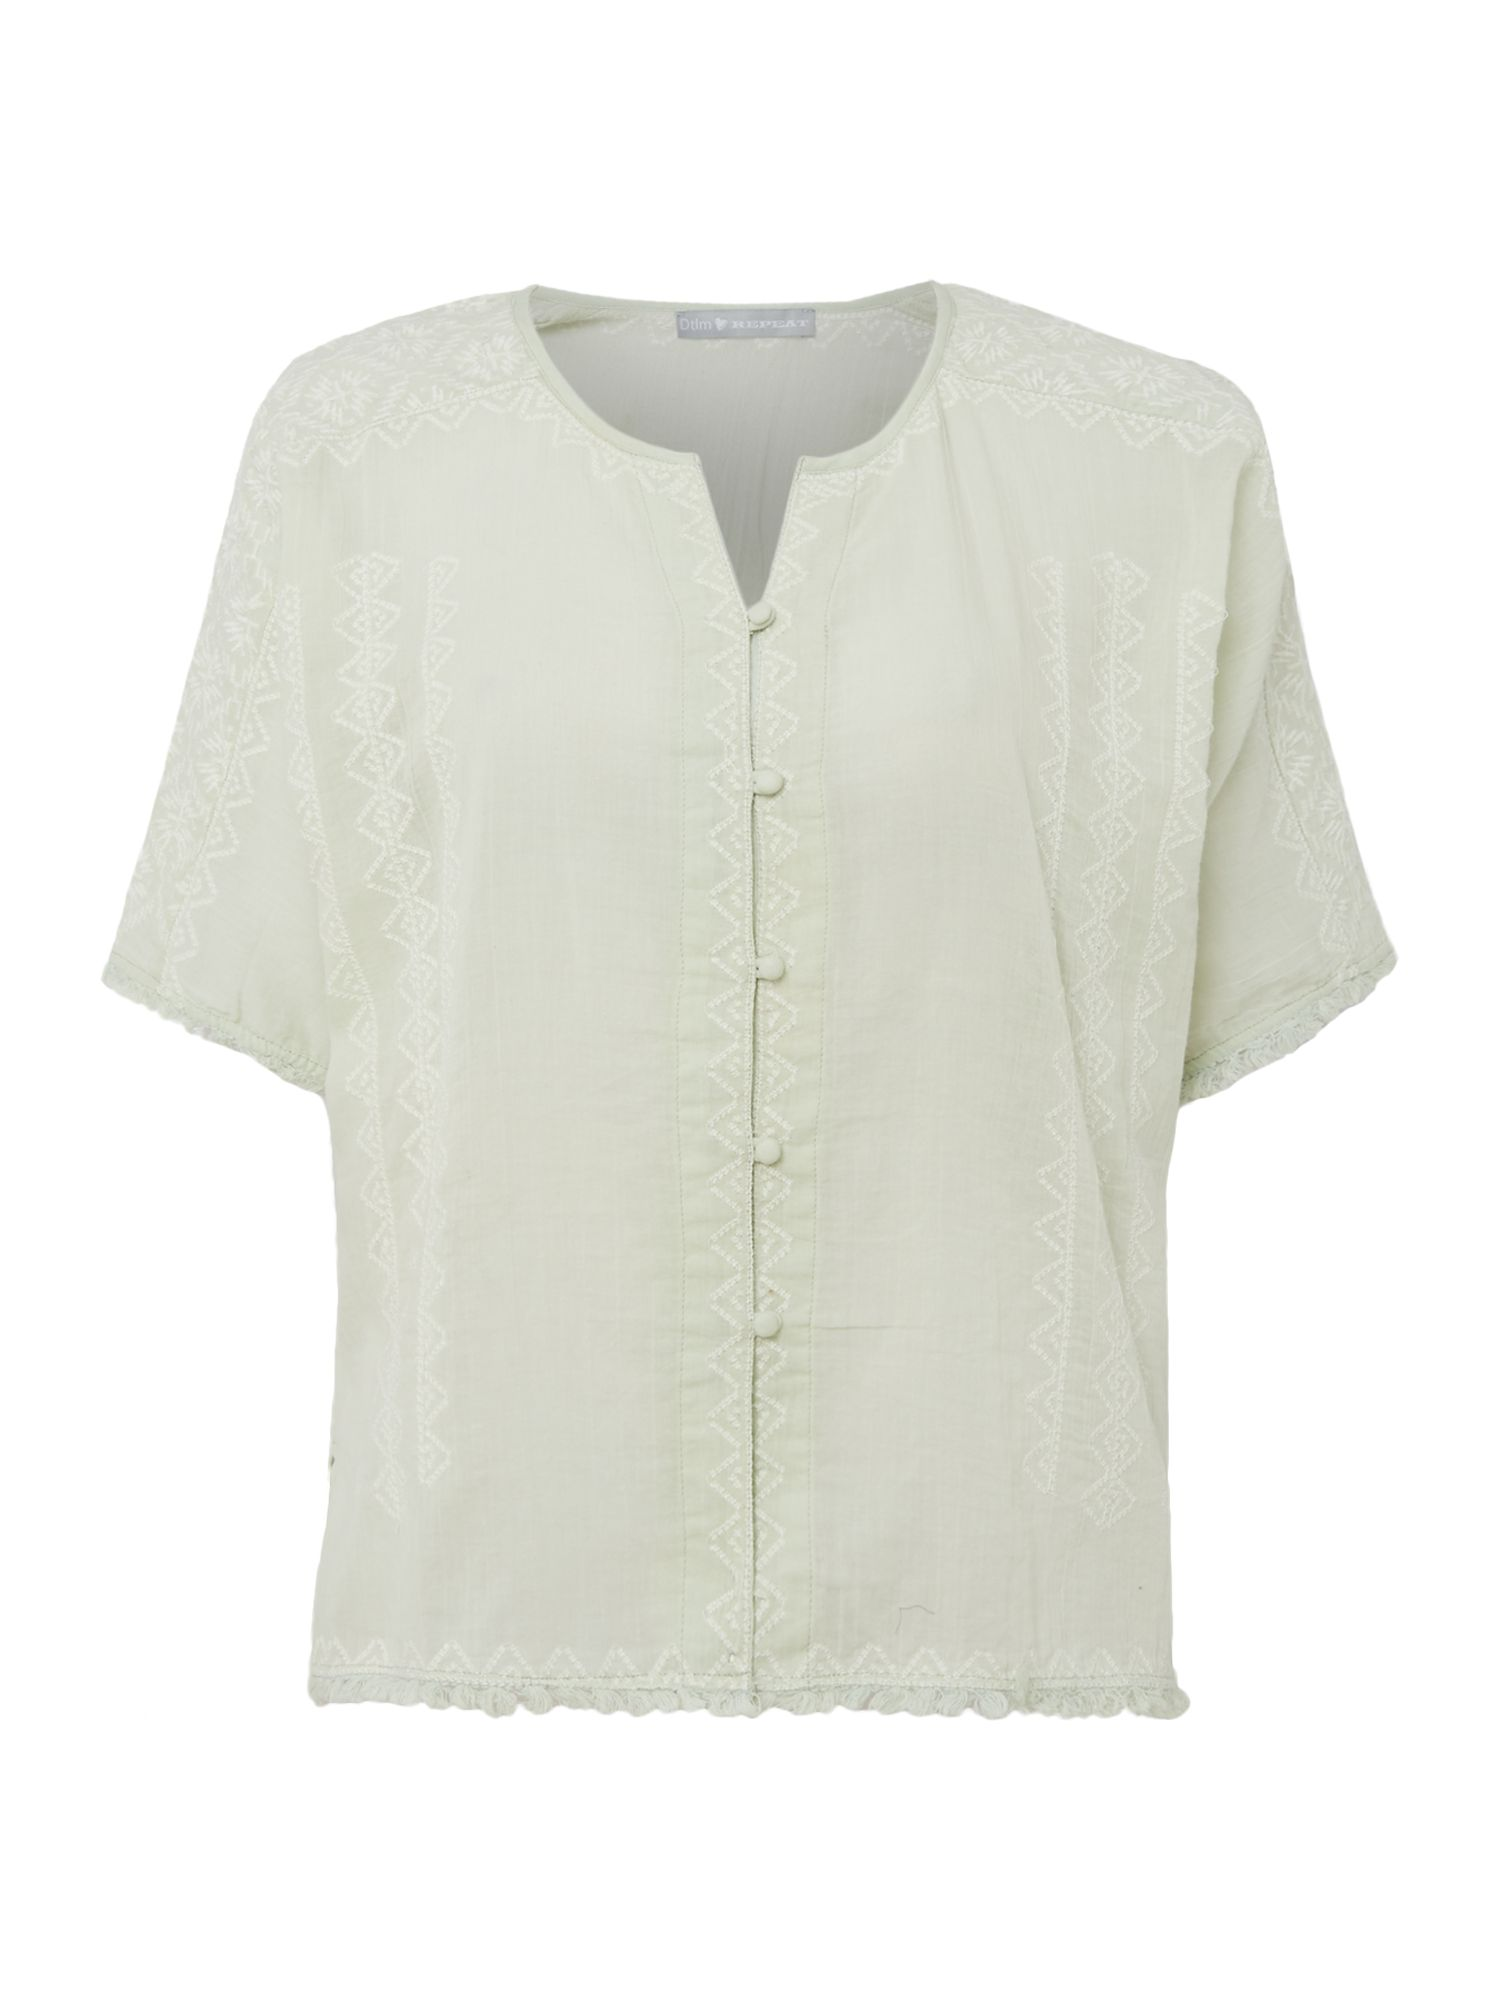 Repeat Cashmere Button up short sleeve embroidered top, Jade